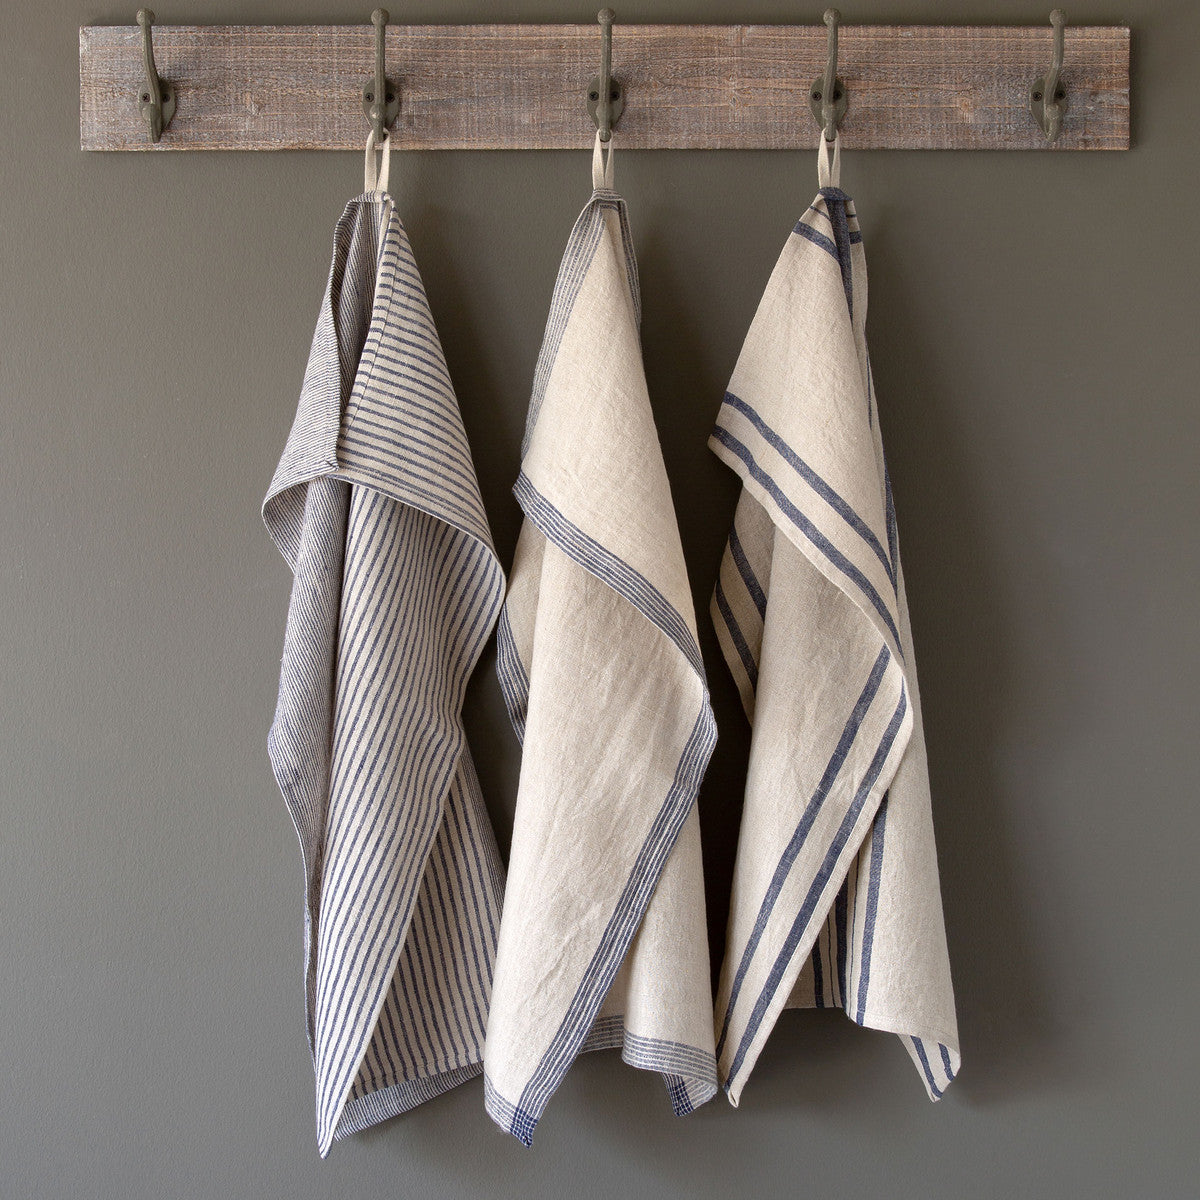 Linen Dish Towels in Navy